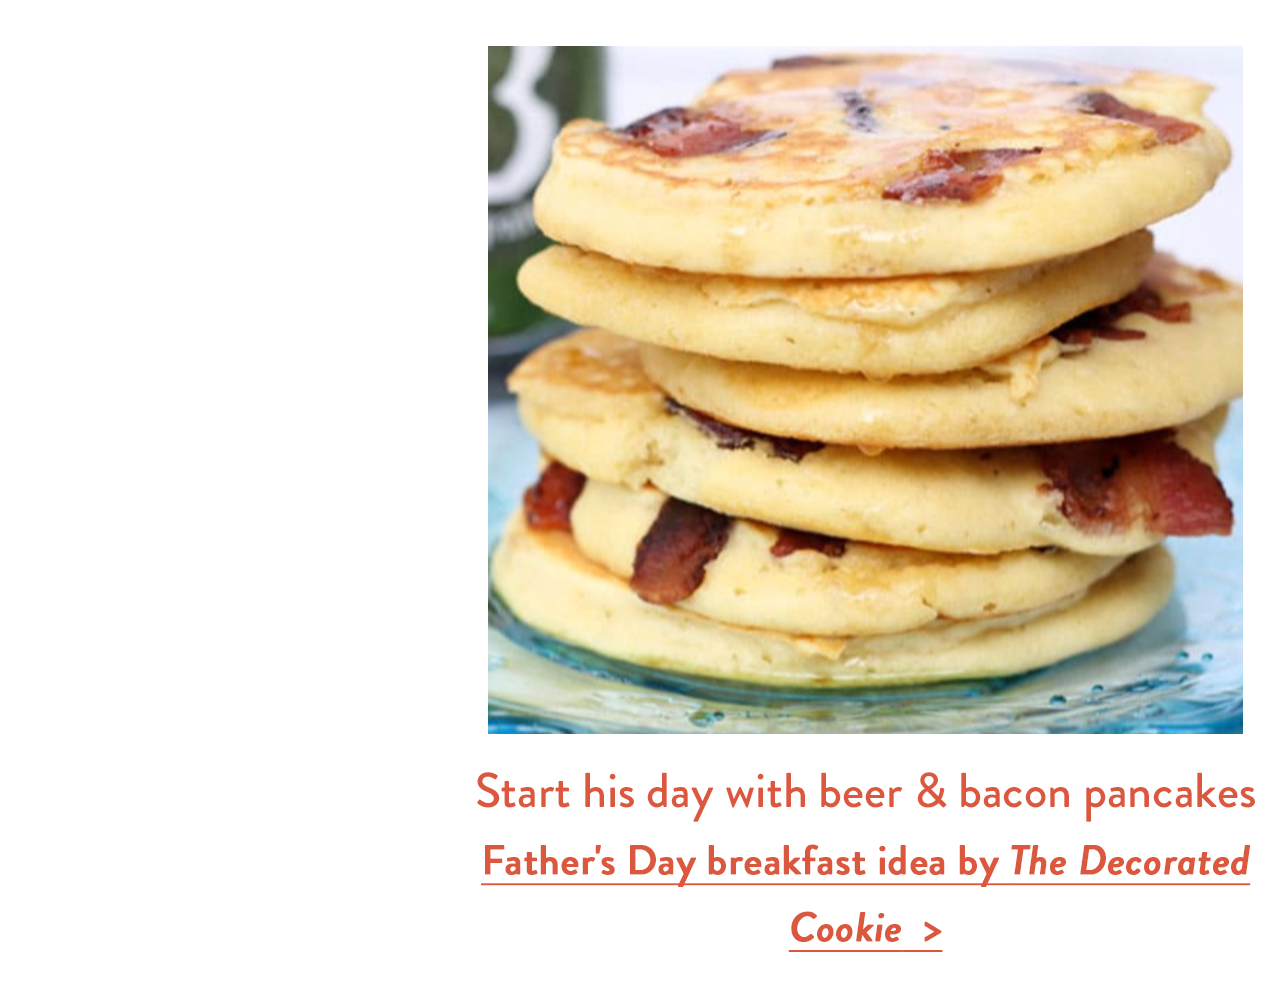 Start his day with beer & bacon pancakes